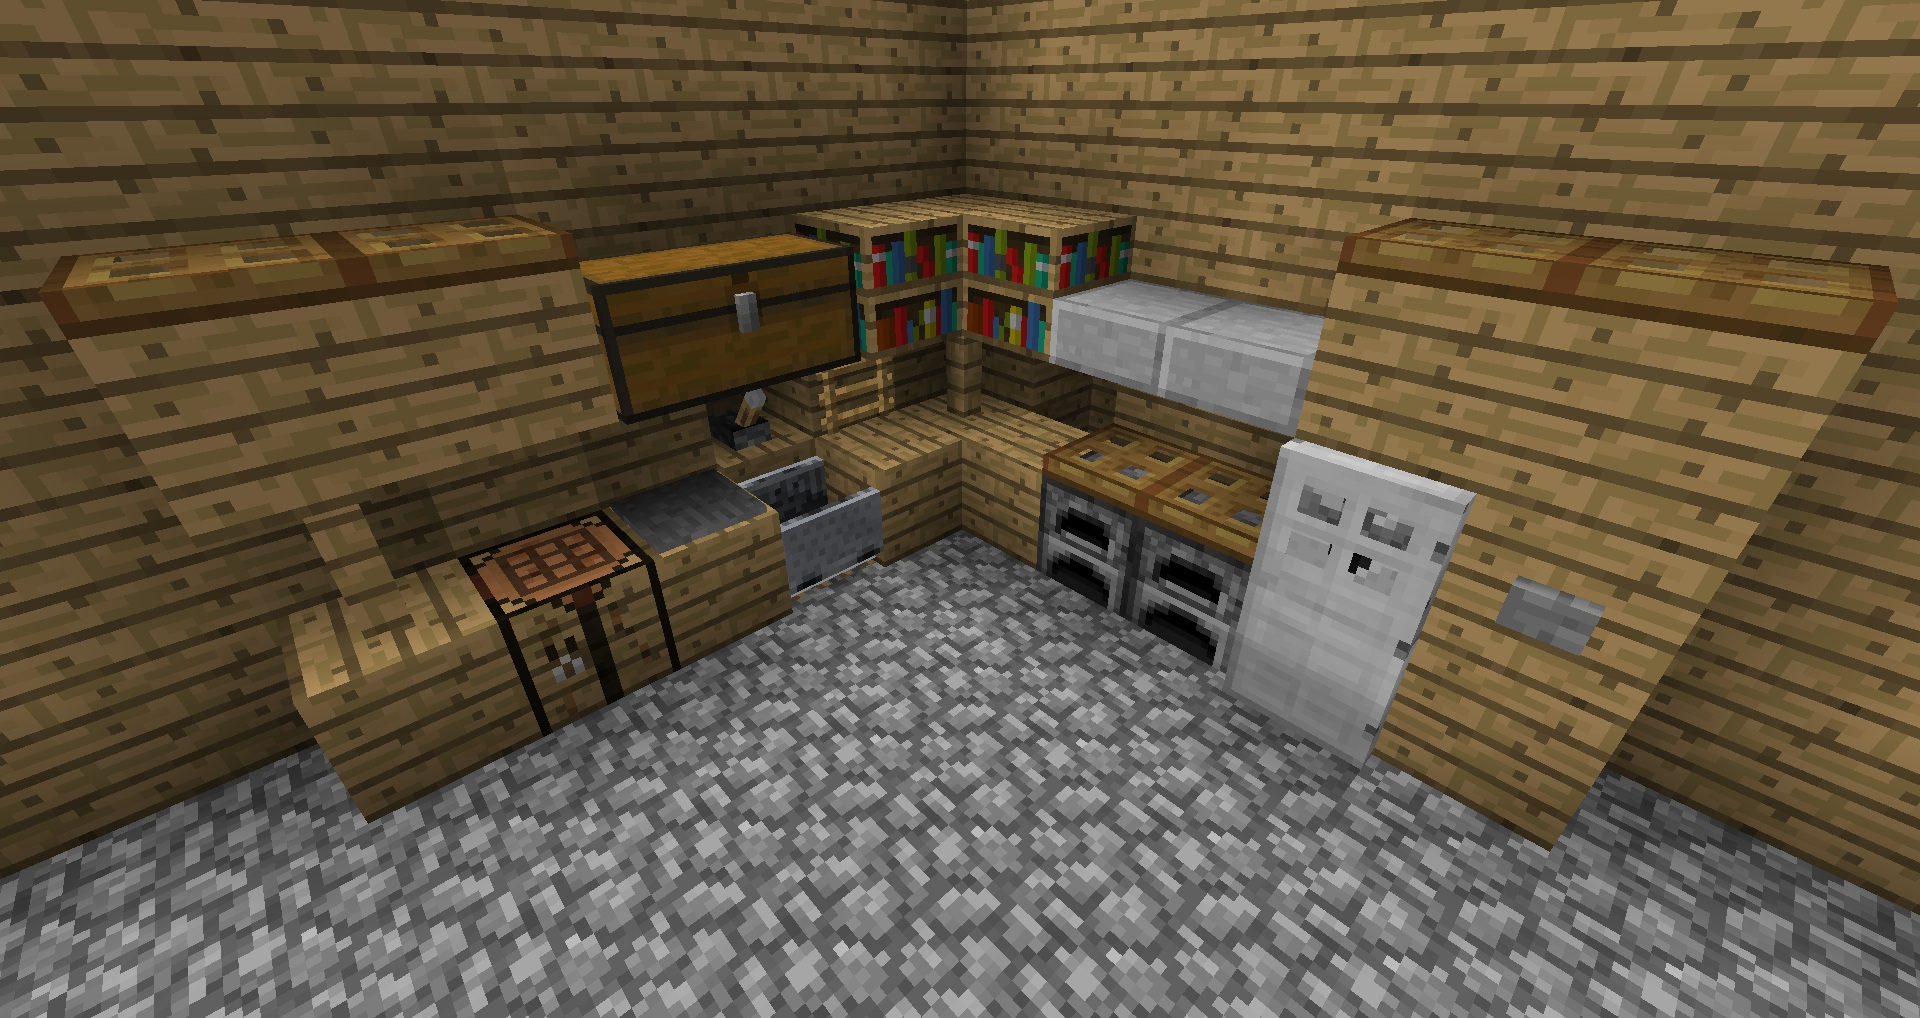 Delightful Kitchen Design Ideas Minecraft Minecraft Kitchen Design Minecraft Kitchen  Designs Modern Rustic Part 15